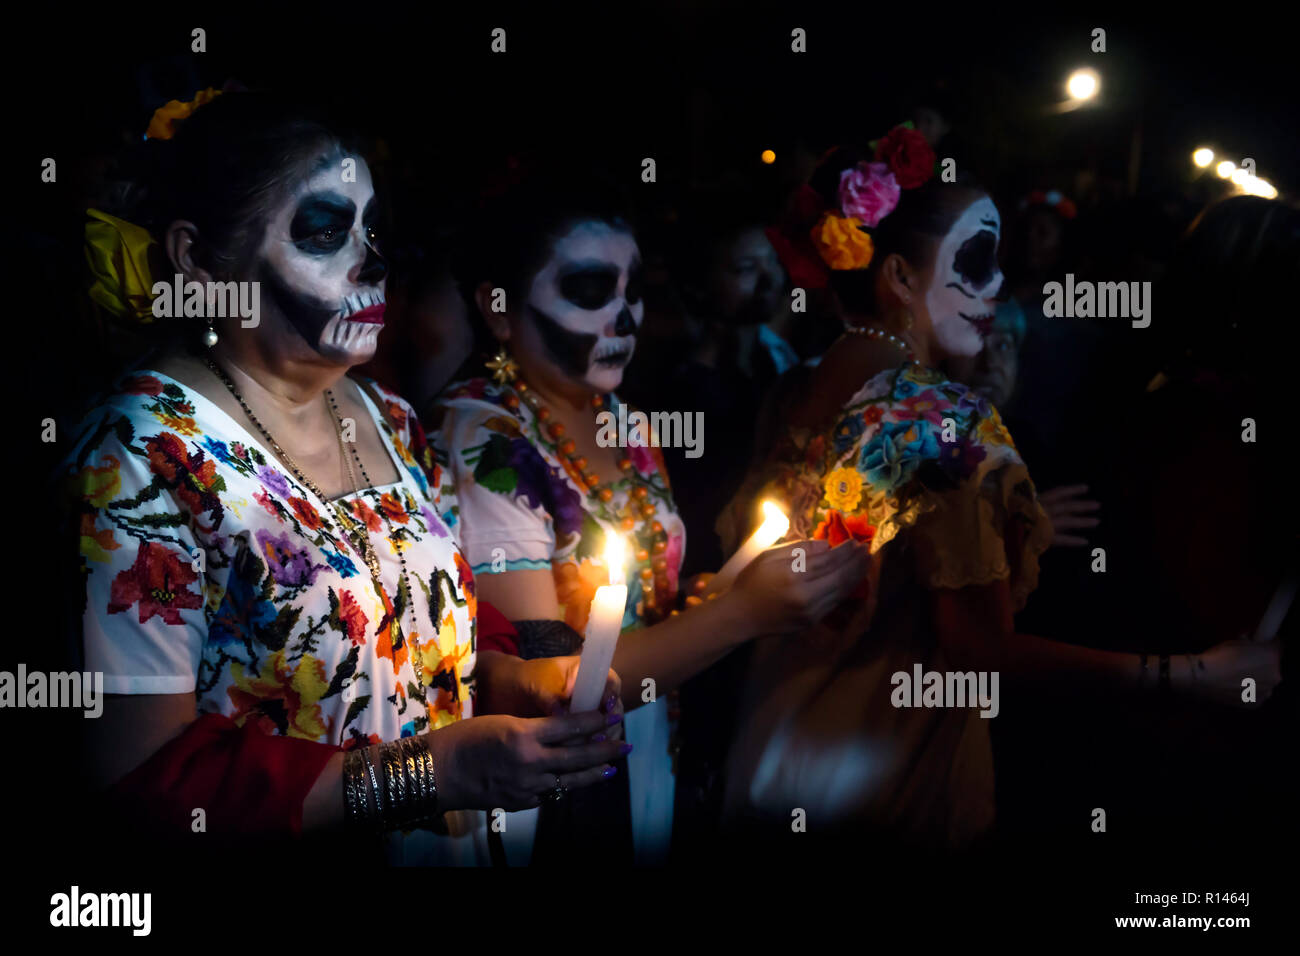 Merida, Cementerio General, Mexico - 31 October 2018: Three customed woman dressed as Catrinas with skull make-up having troubles with the candles bet - Stock Image